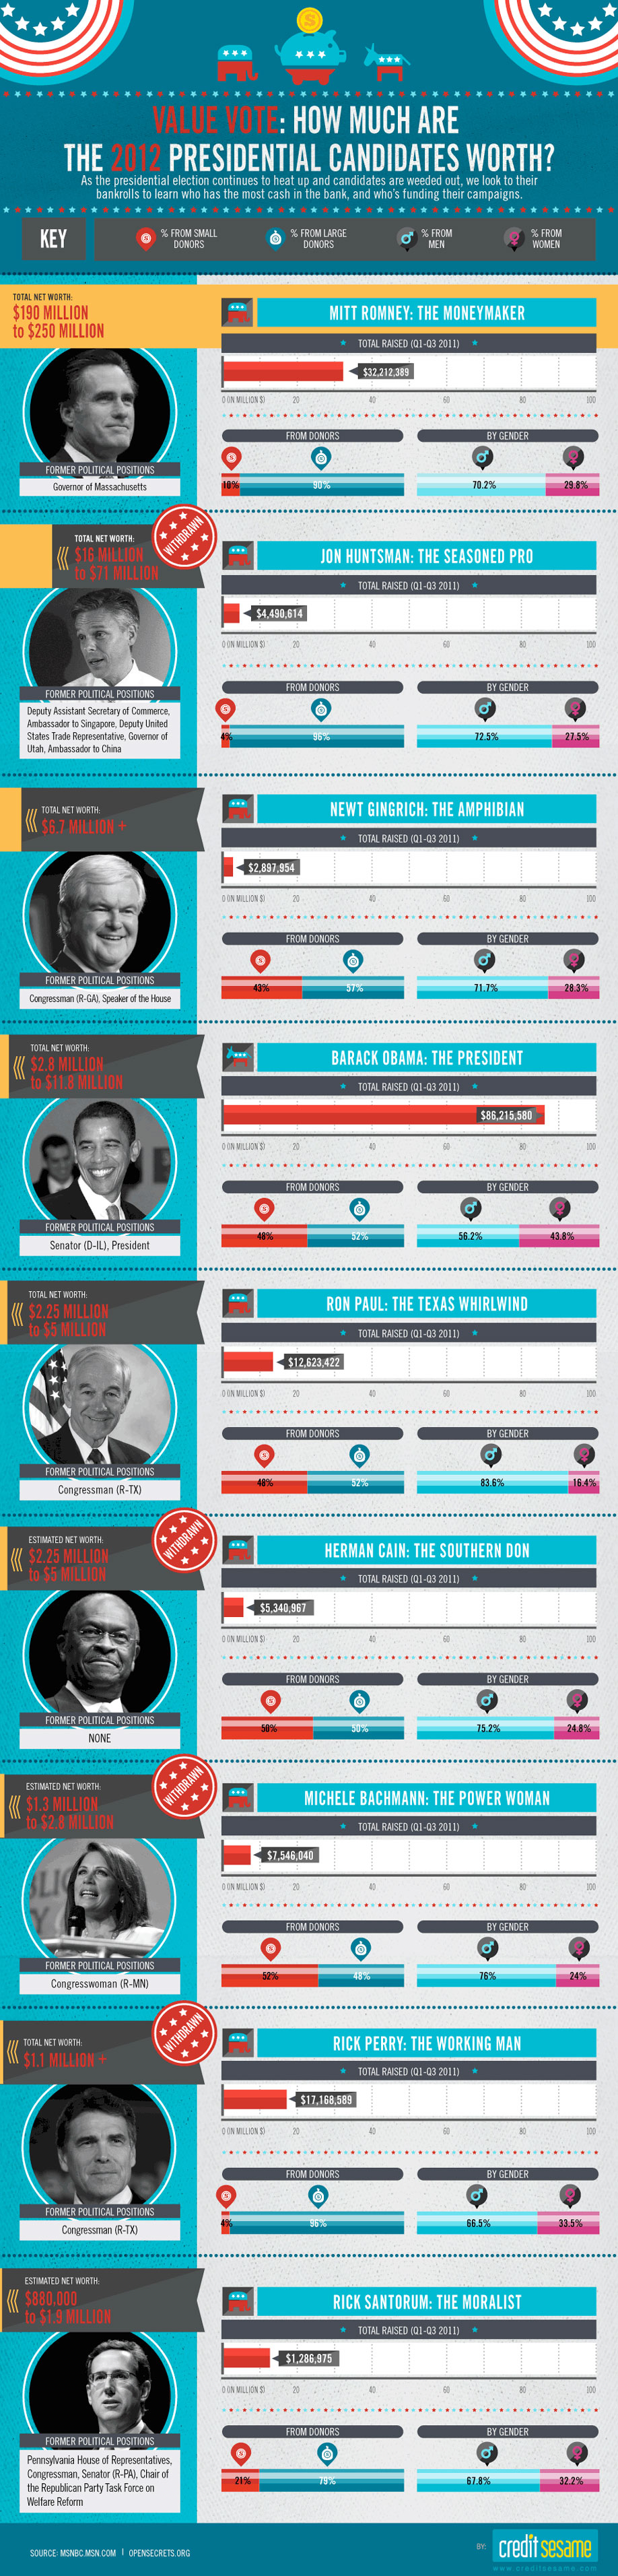 How Much Are The 2012 Presidential Candidates Worth?